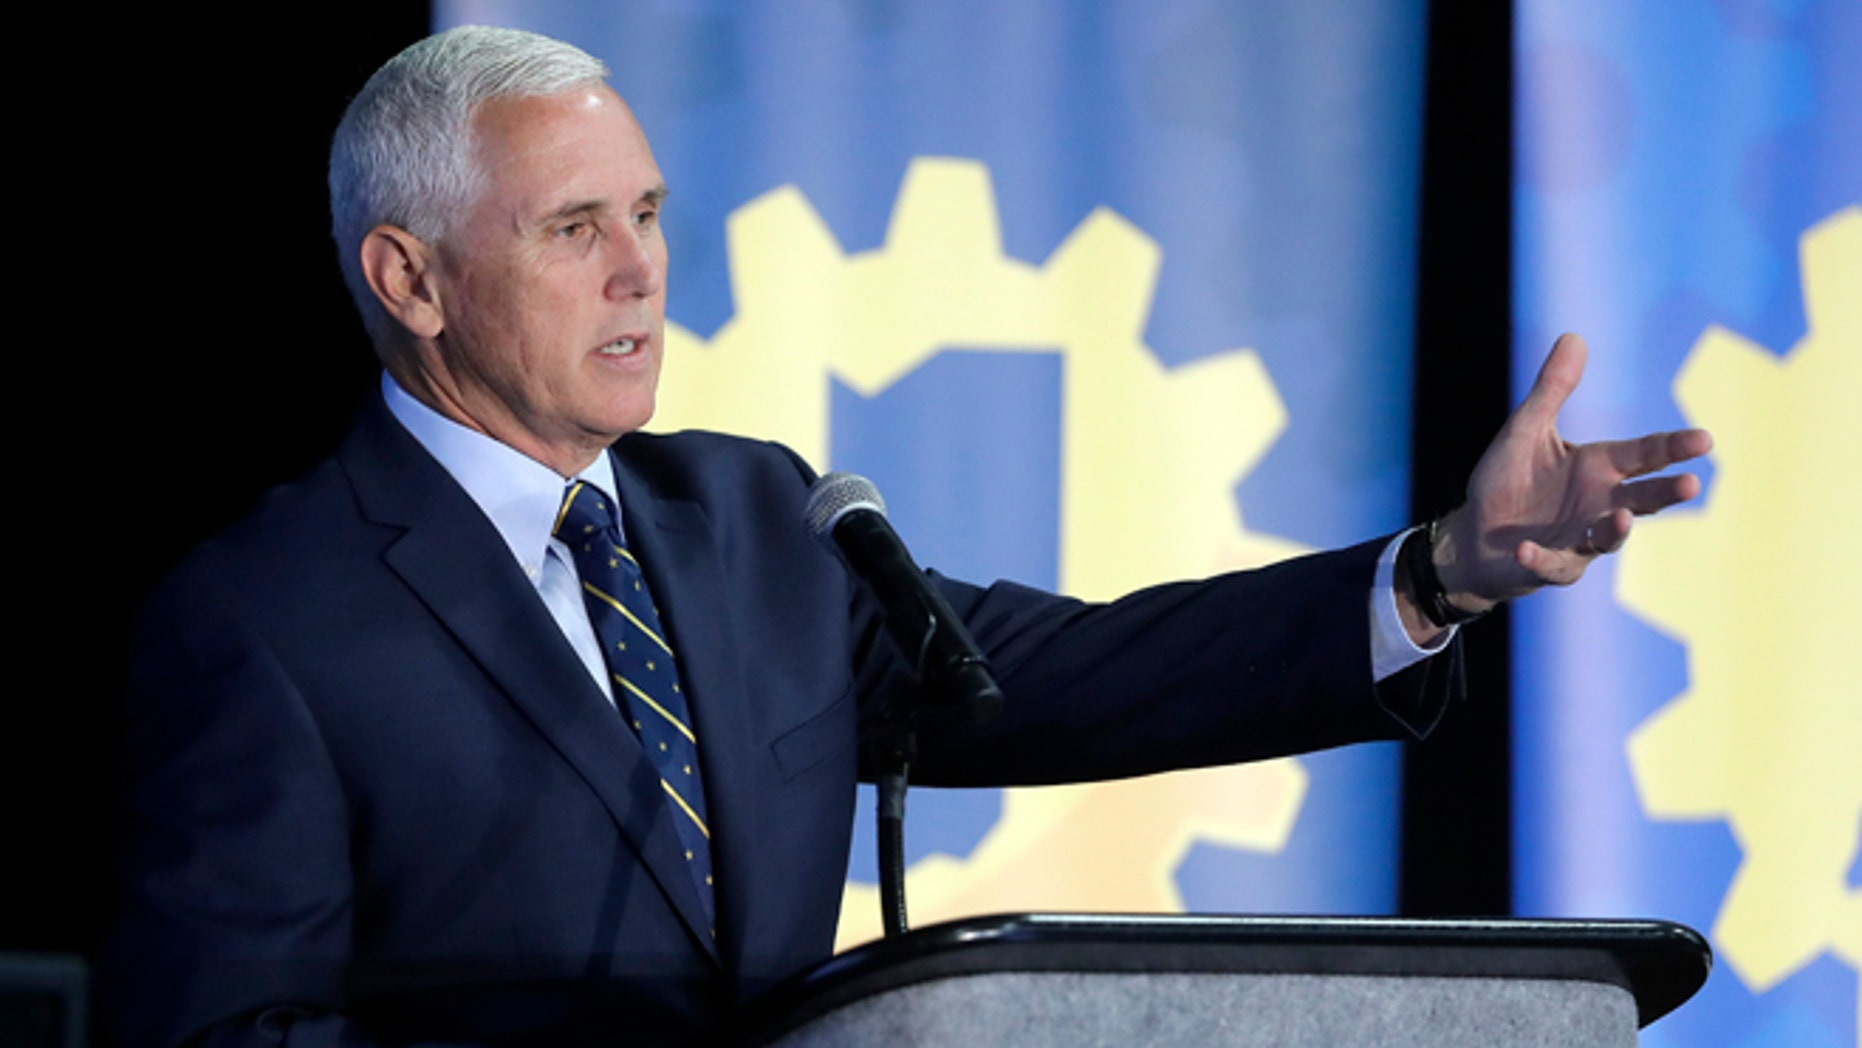 Indiana Gov. Mike Pence during the Innovation Showcase, Thursday, July 14, 2016, in Indianapolis.